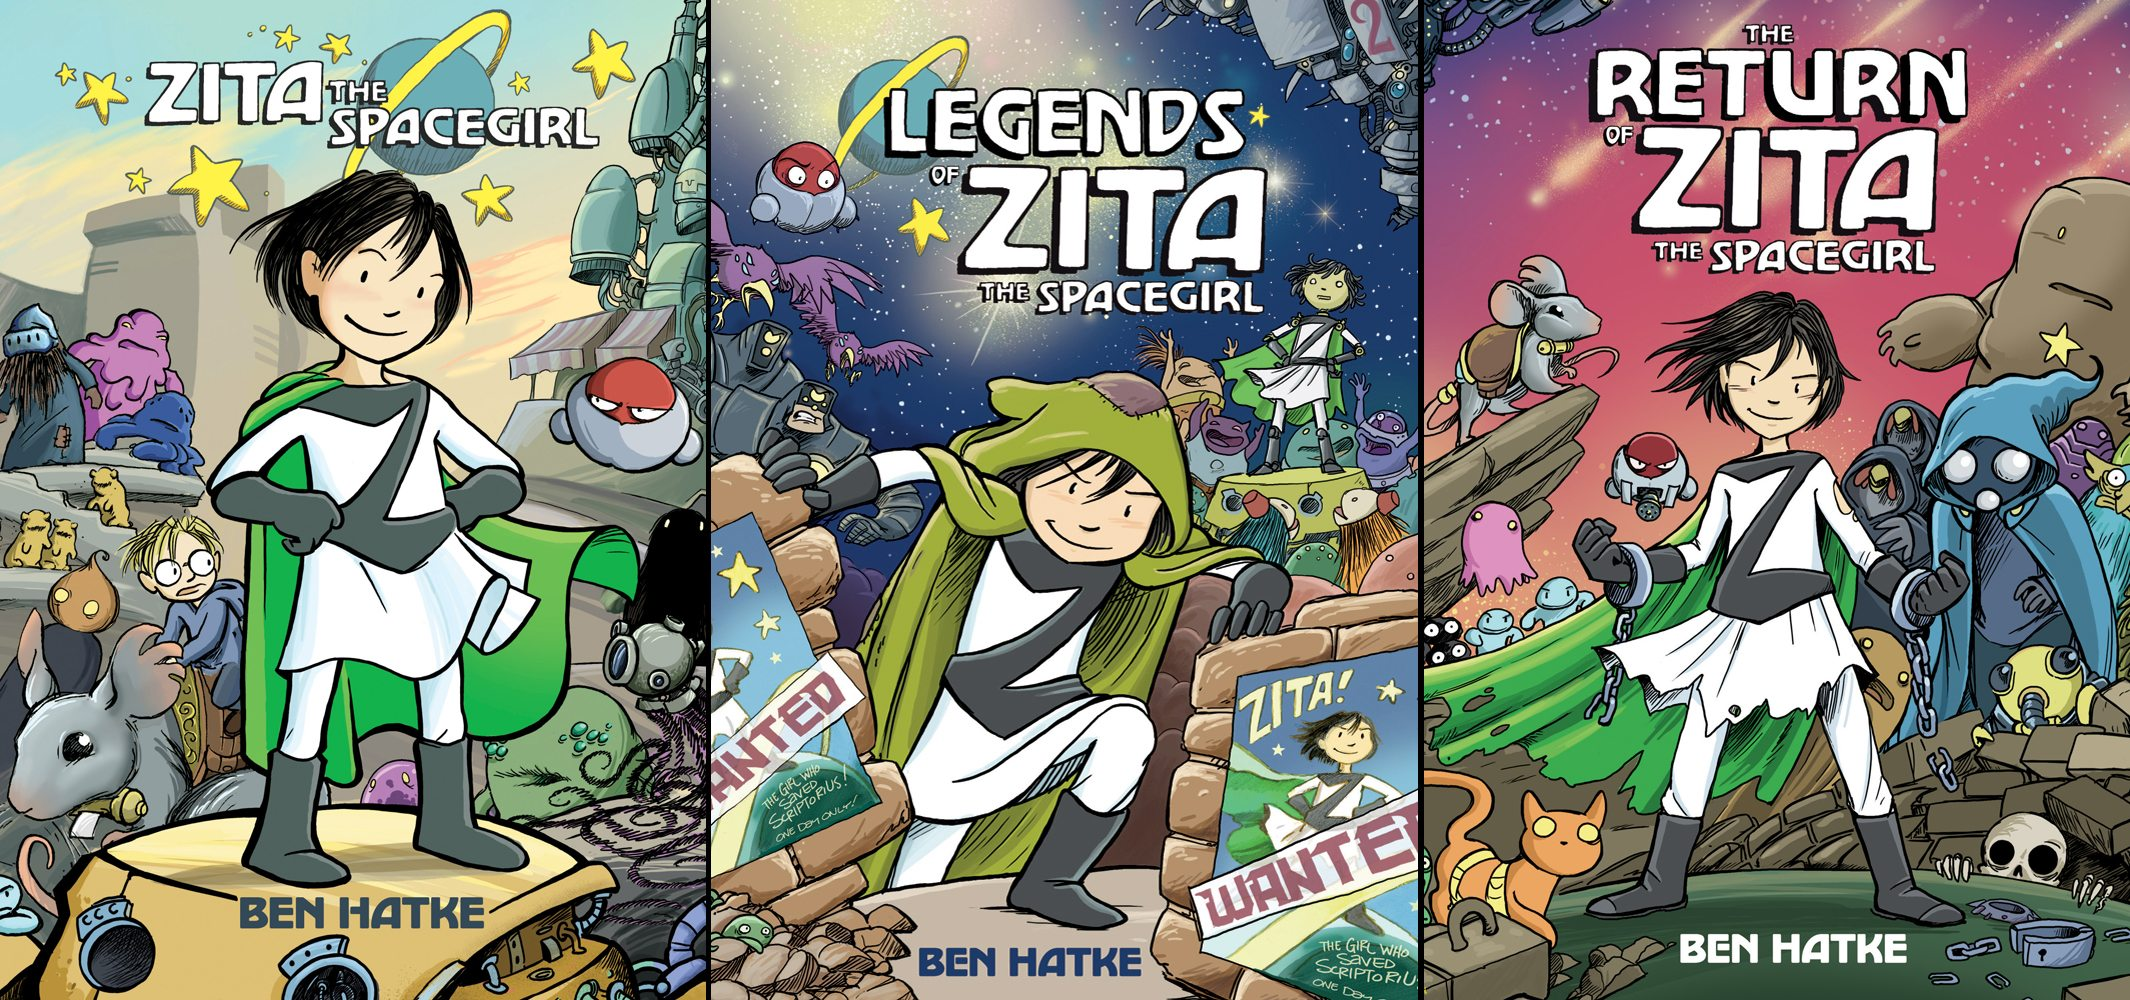 Zita the Spacegirl trilogy